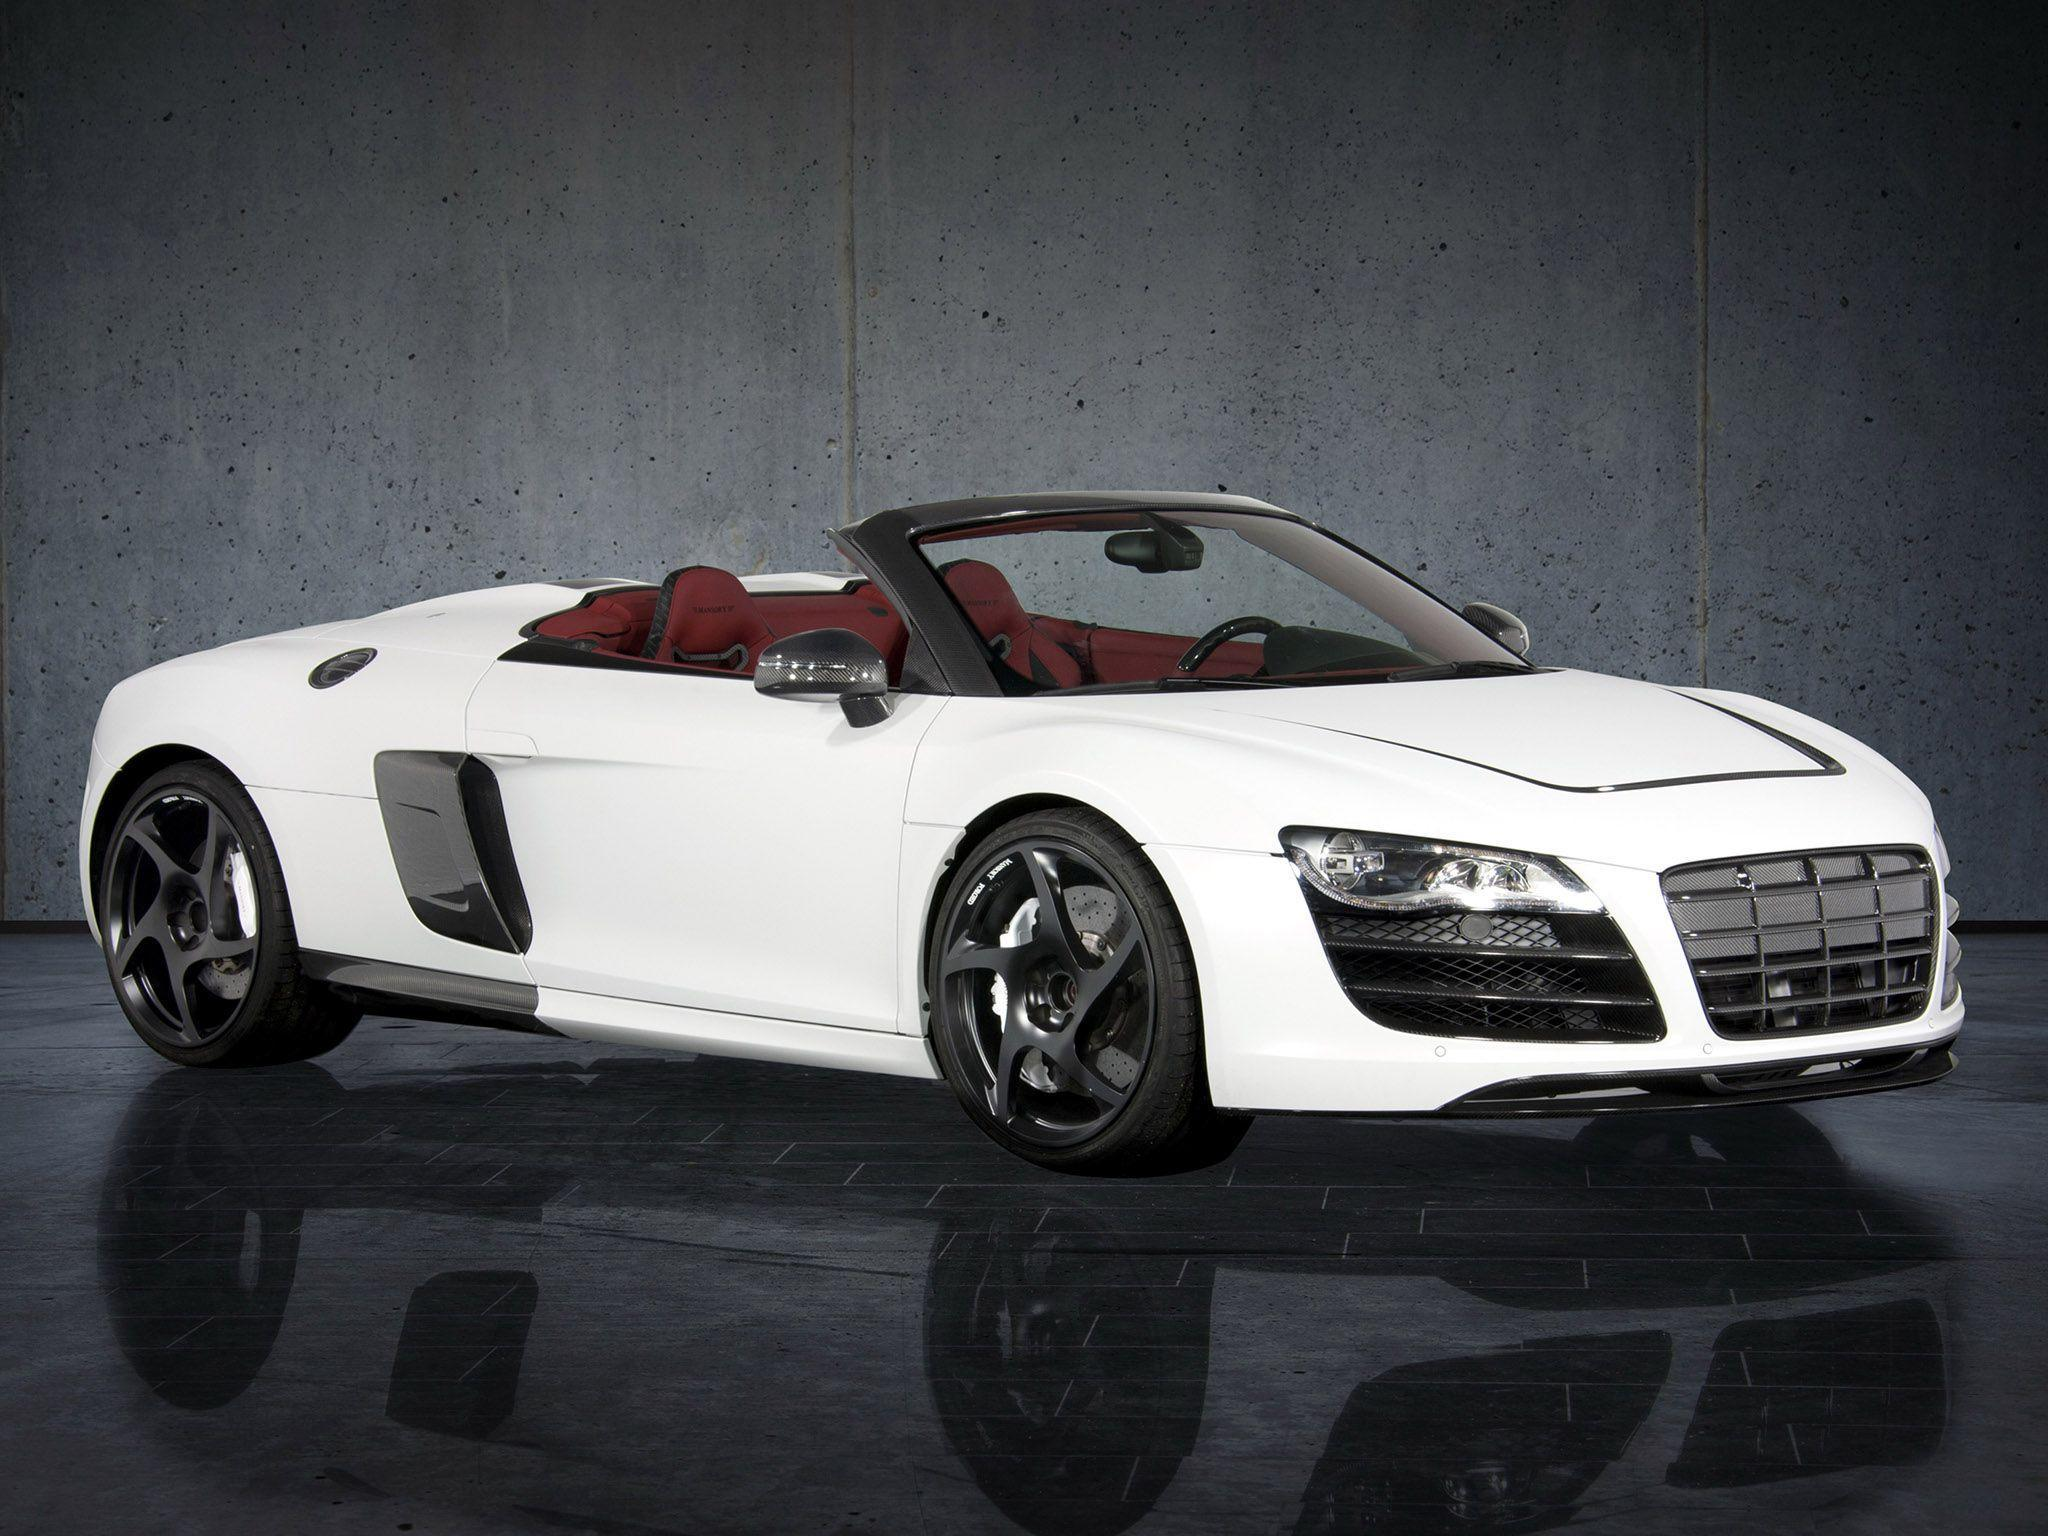 Audi R8 Spyder 2015 Wallpapers - Wallpaper Cave